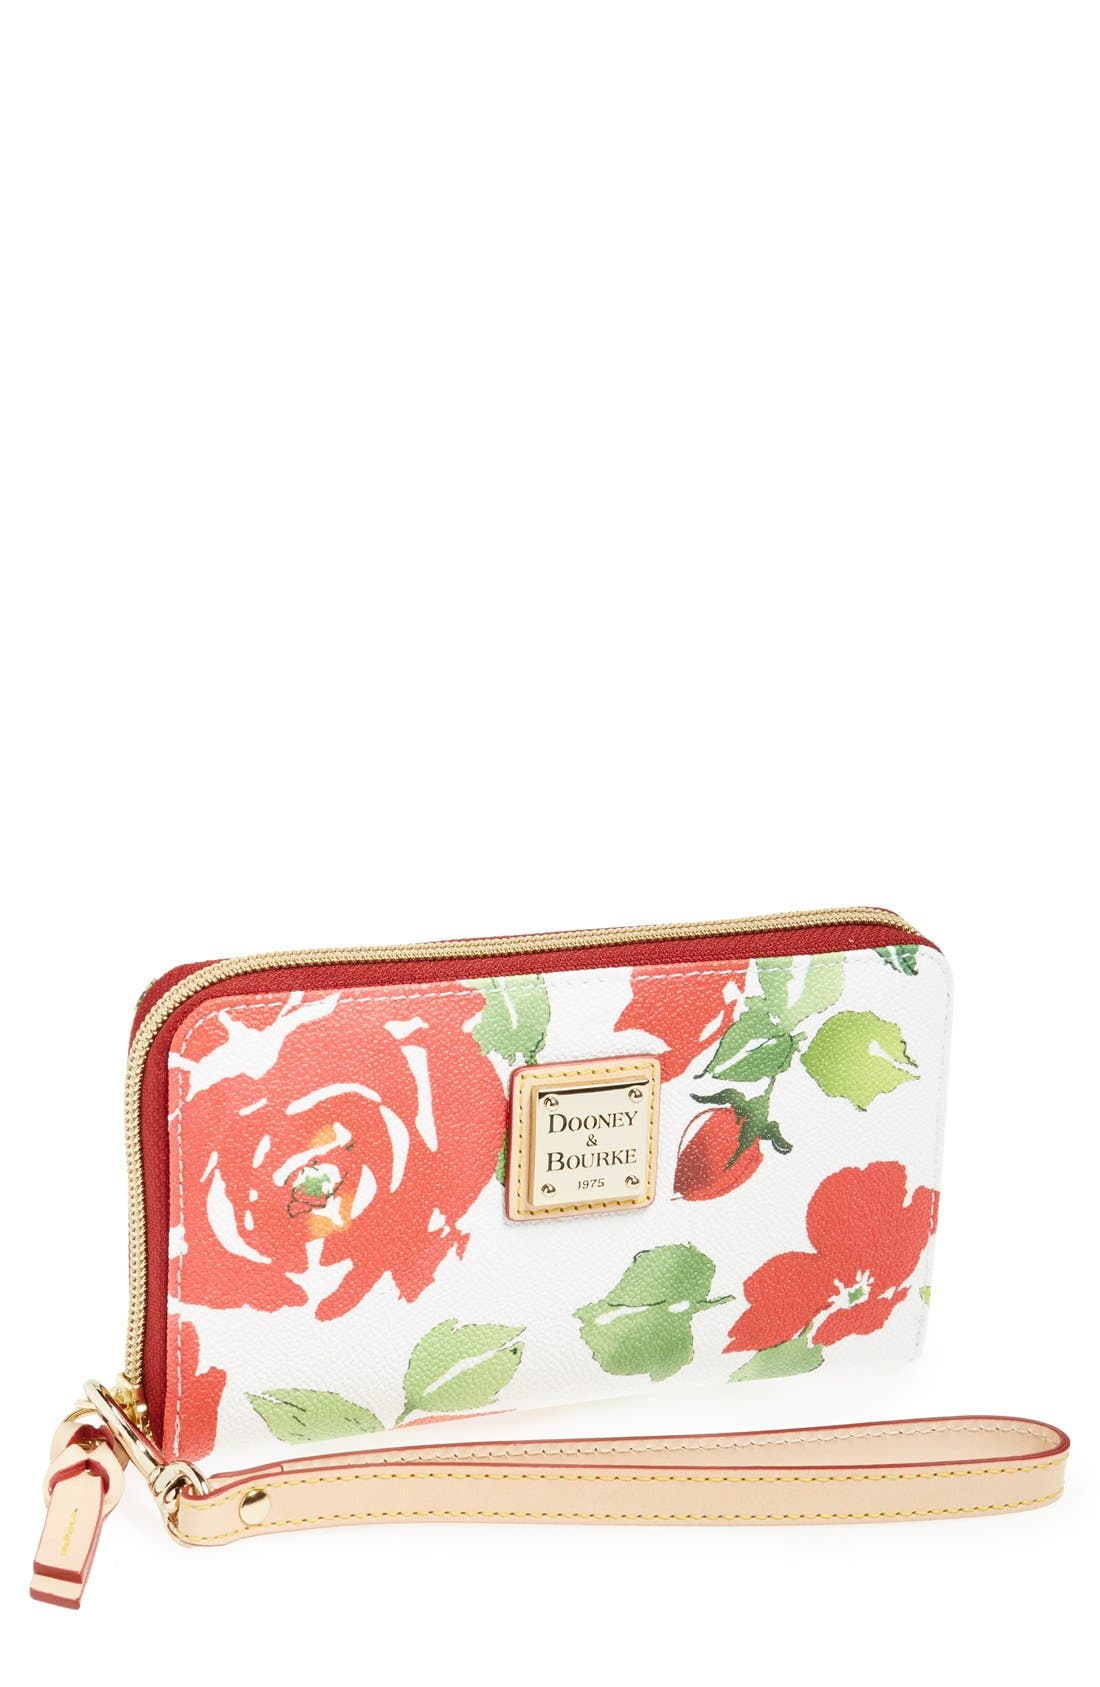 Alternate Image 1 Selected - Dooney & Bourke 'Rose Garden' Zip Around Wristlet